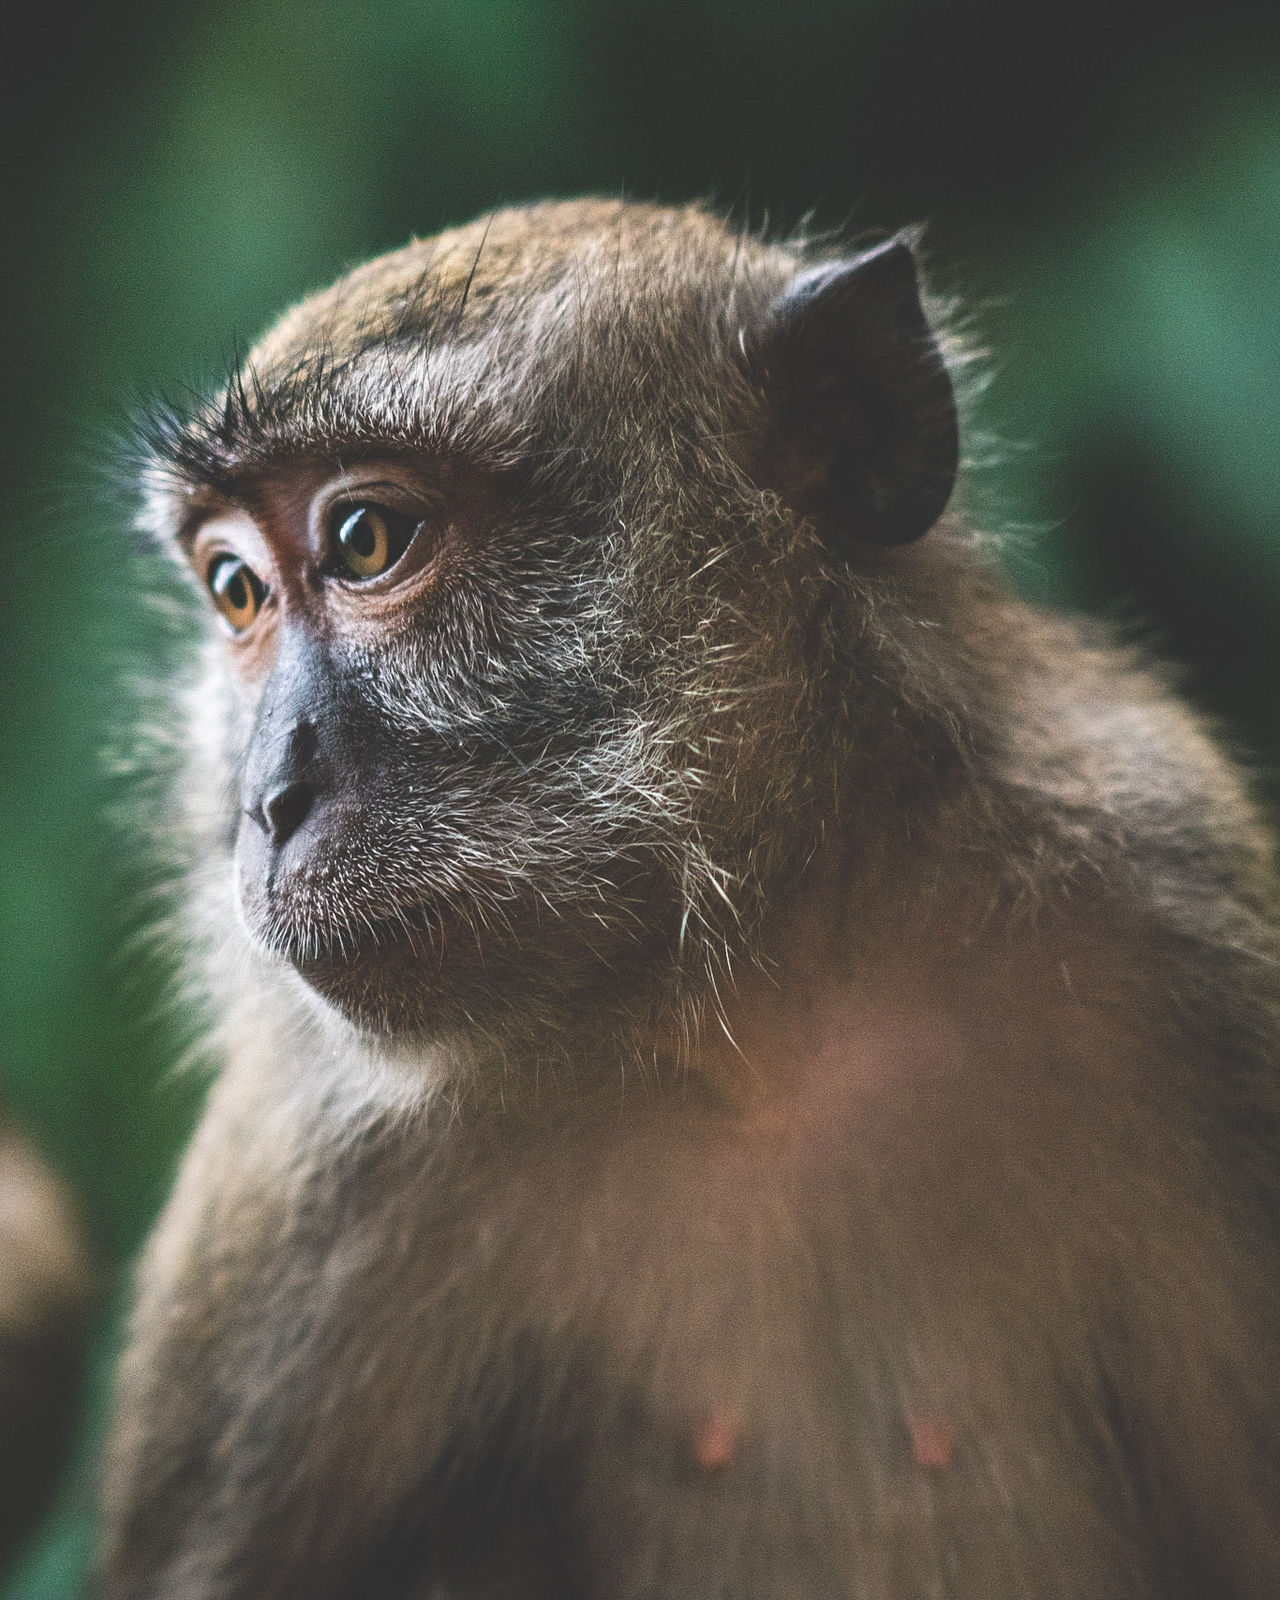 Humanish Primate Animal Themes Mammal Monkey Animals In The Wild Animal Wildlife One Animal No People Close-up Day Outdoors Ape Nature Traveling Travel Kuala Lumpur Showcase: March Malaysia ASIA Wanderlust Portrait